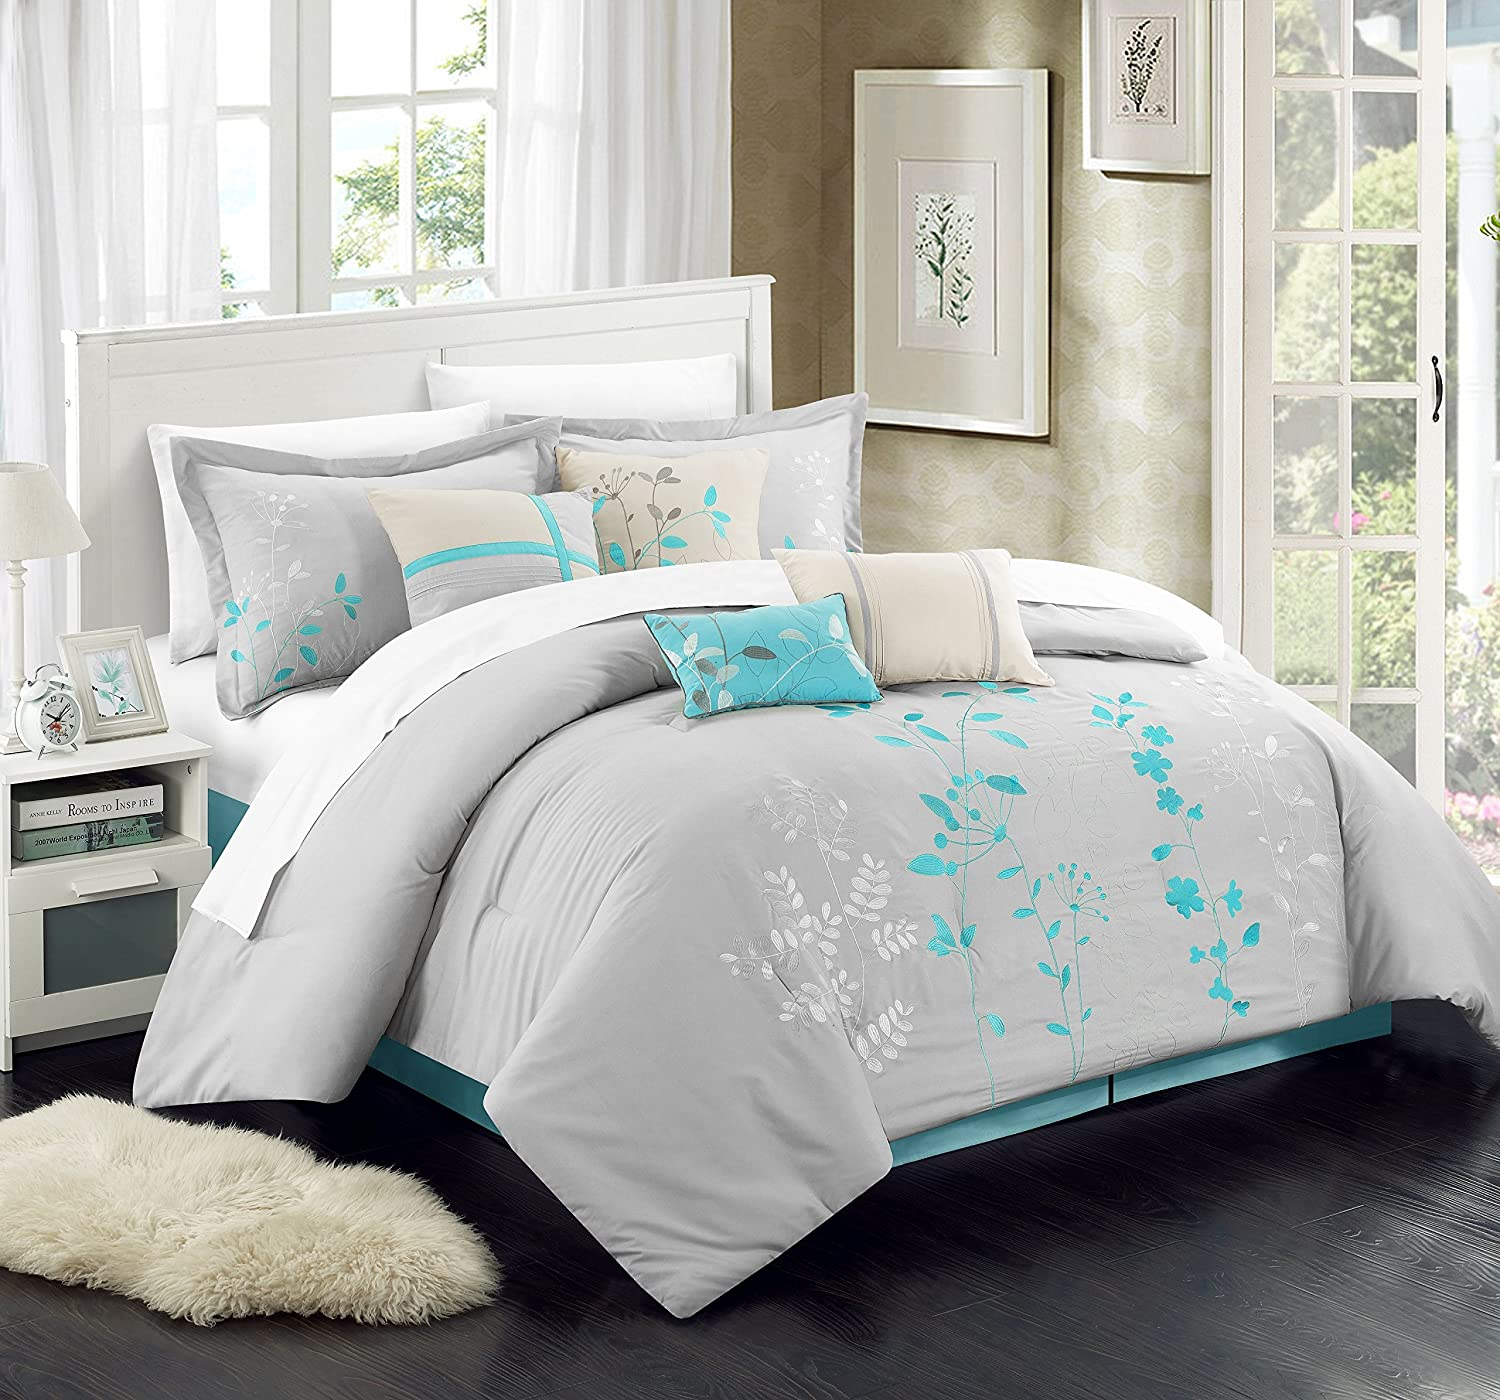 Amazon.com: Chic Home 8 Piece Bliss Garden Comforter Set, Queen ...